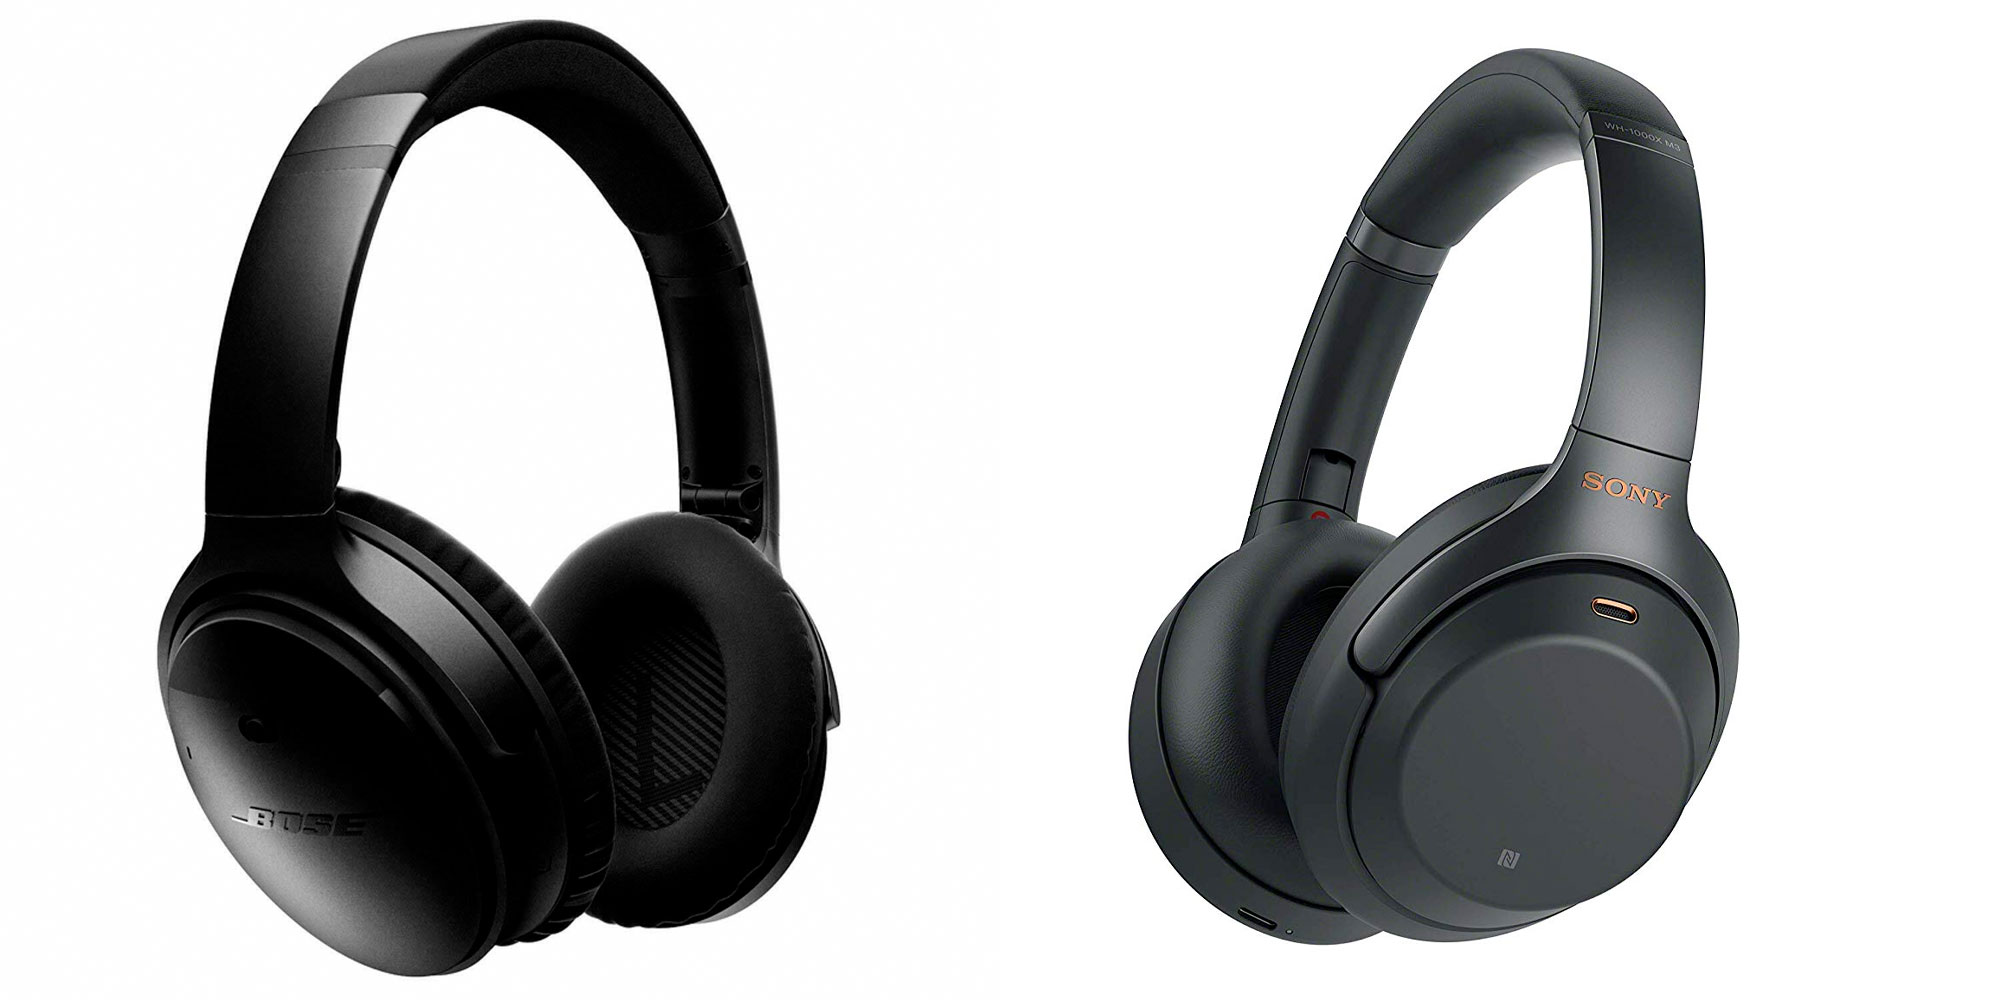 Score refurb Bose QC35 ANC headphones for $199 (Orig. $349) or Sony's XM3's for $250 (Orig. $348)